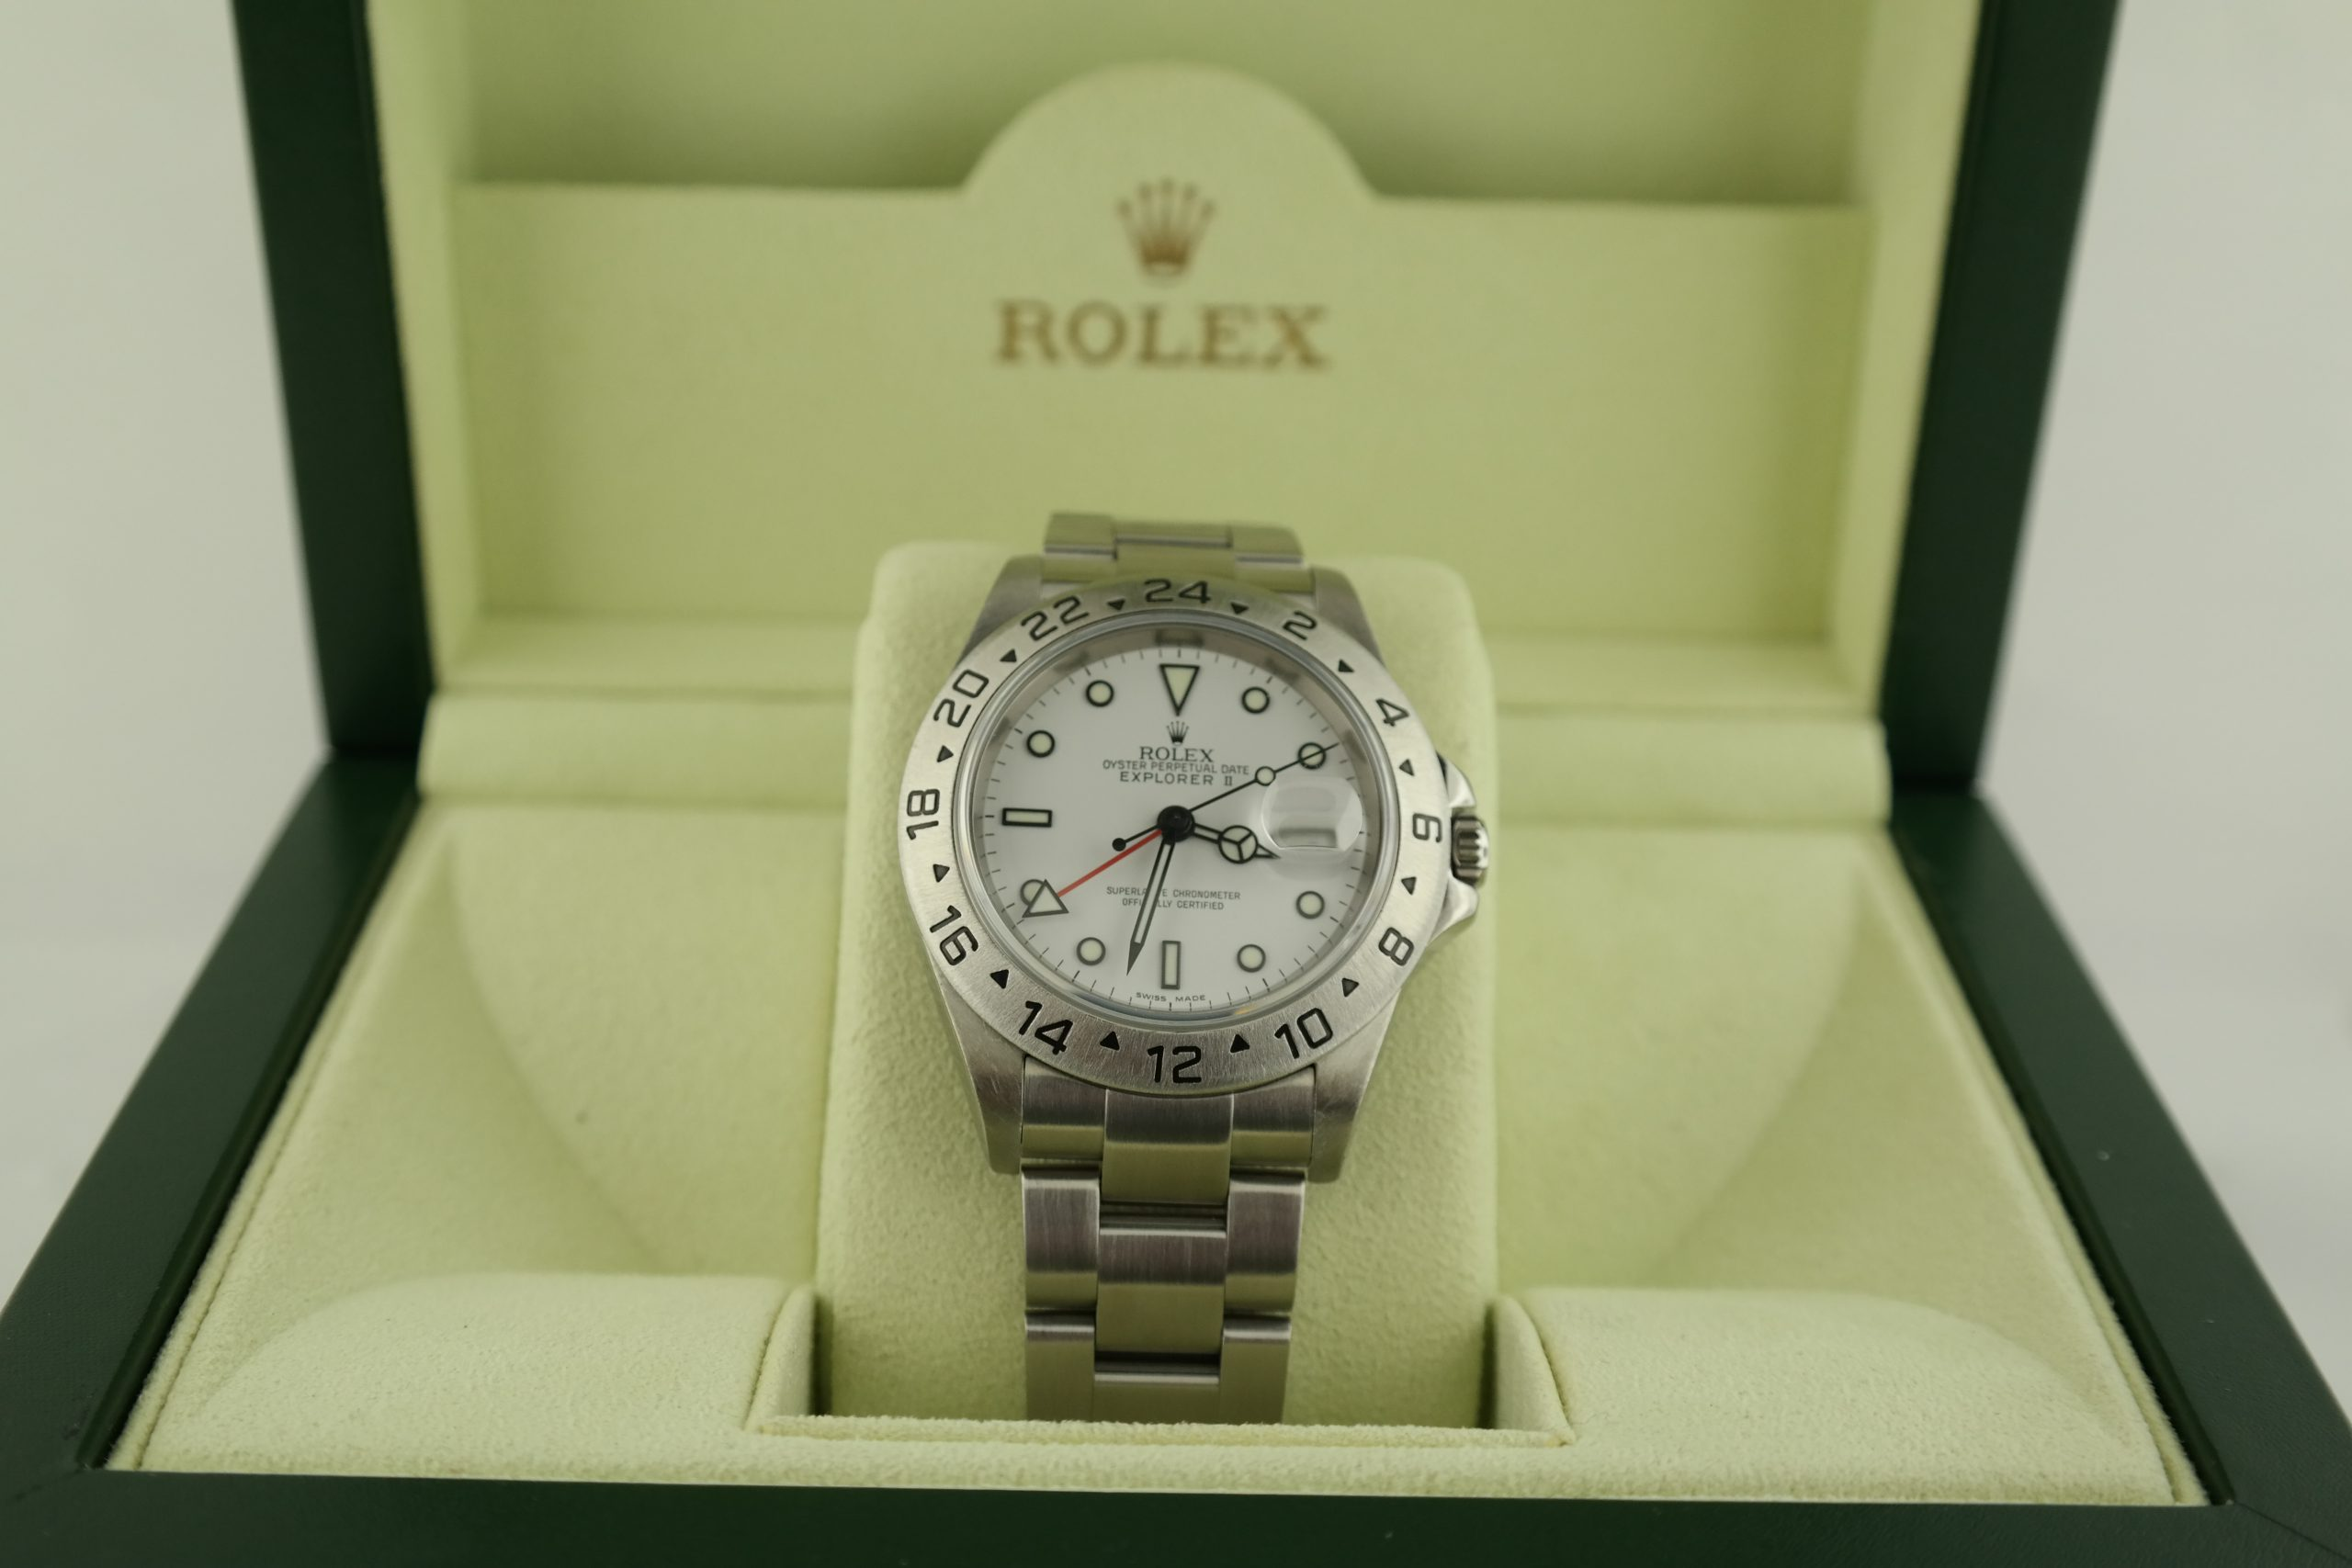 Rolex Explorer II 16570T Polar White Dial 40mm Oyster Band Box & Paper Year 2007